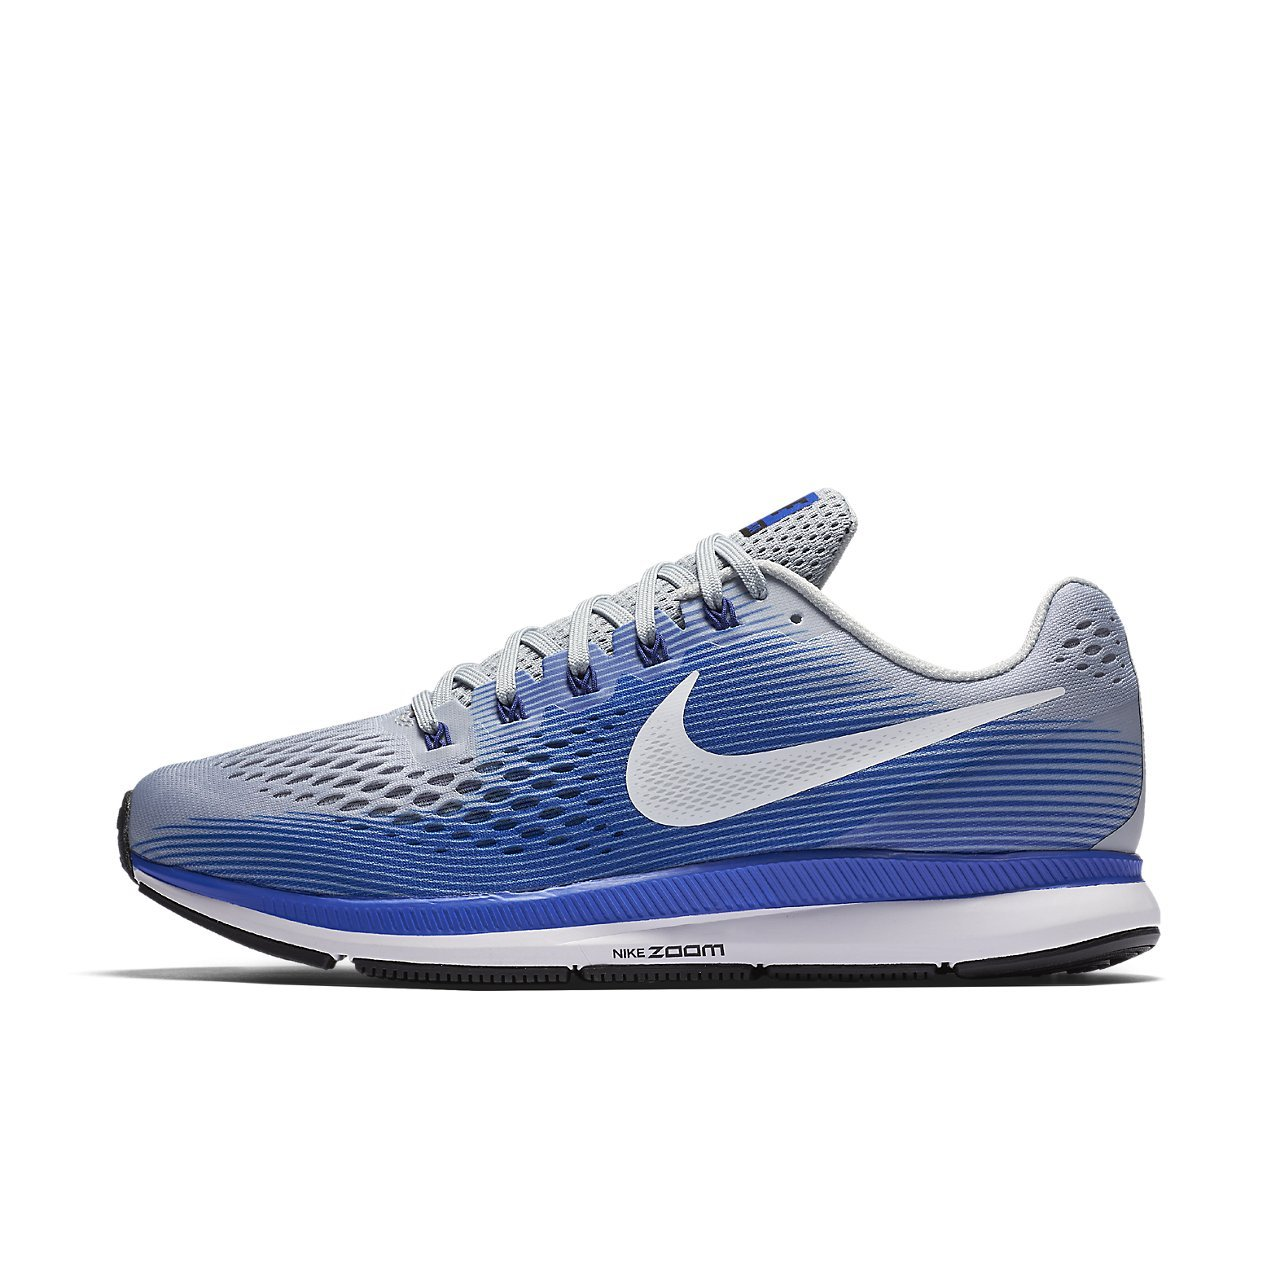 watch 53520 5602d Amazon.com   Nike Men s Air Zoom Pegasus 34 Running Shoe Wide (4E) Wolf  Grey White Racer Blue Size 12 Wide 4E   Road Running